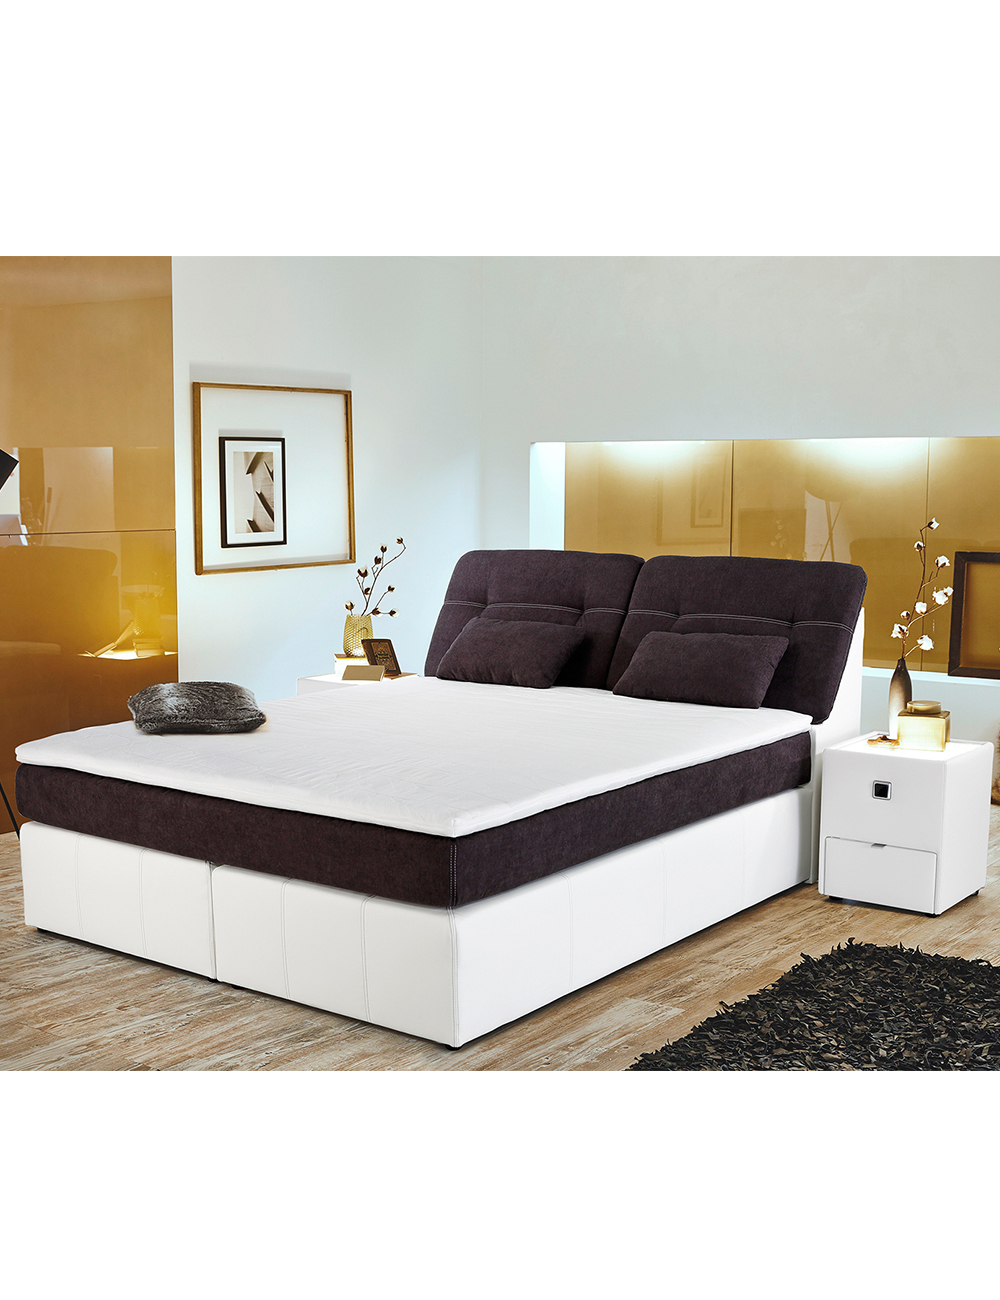 boxspring bett palace 180 x 200 cm schwarz weiss. Black Bedroom Furniture Sets. Home Design Ideas